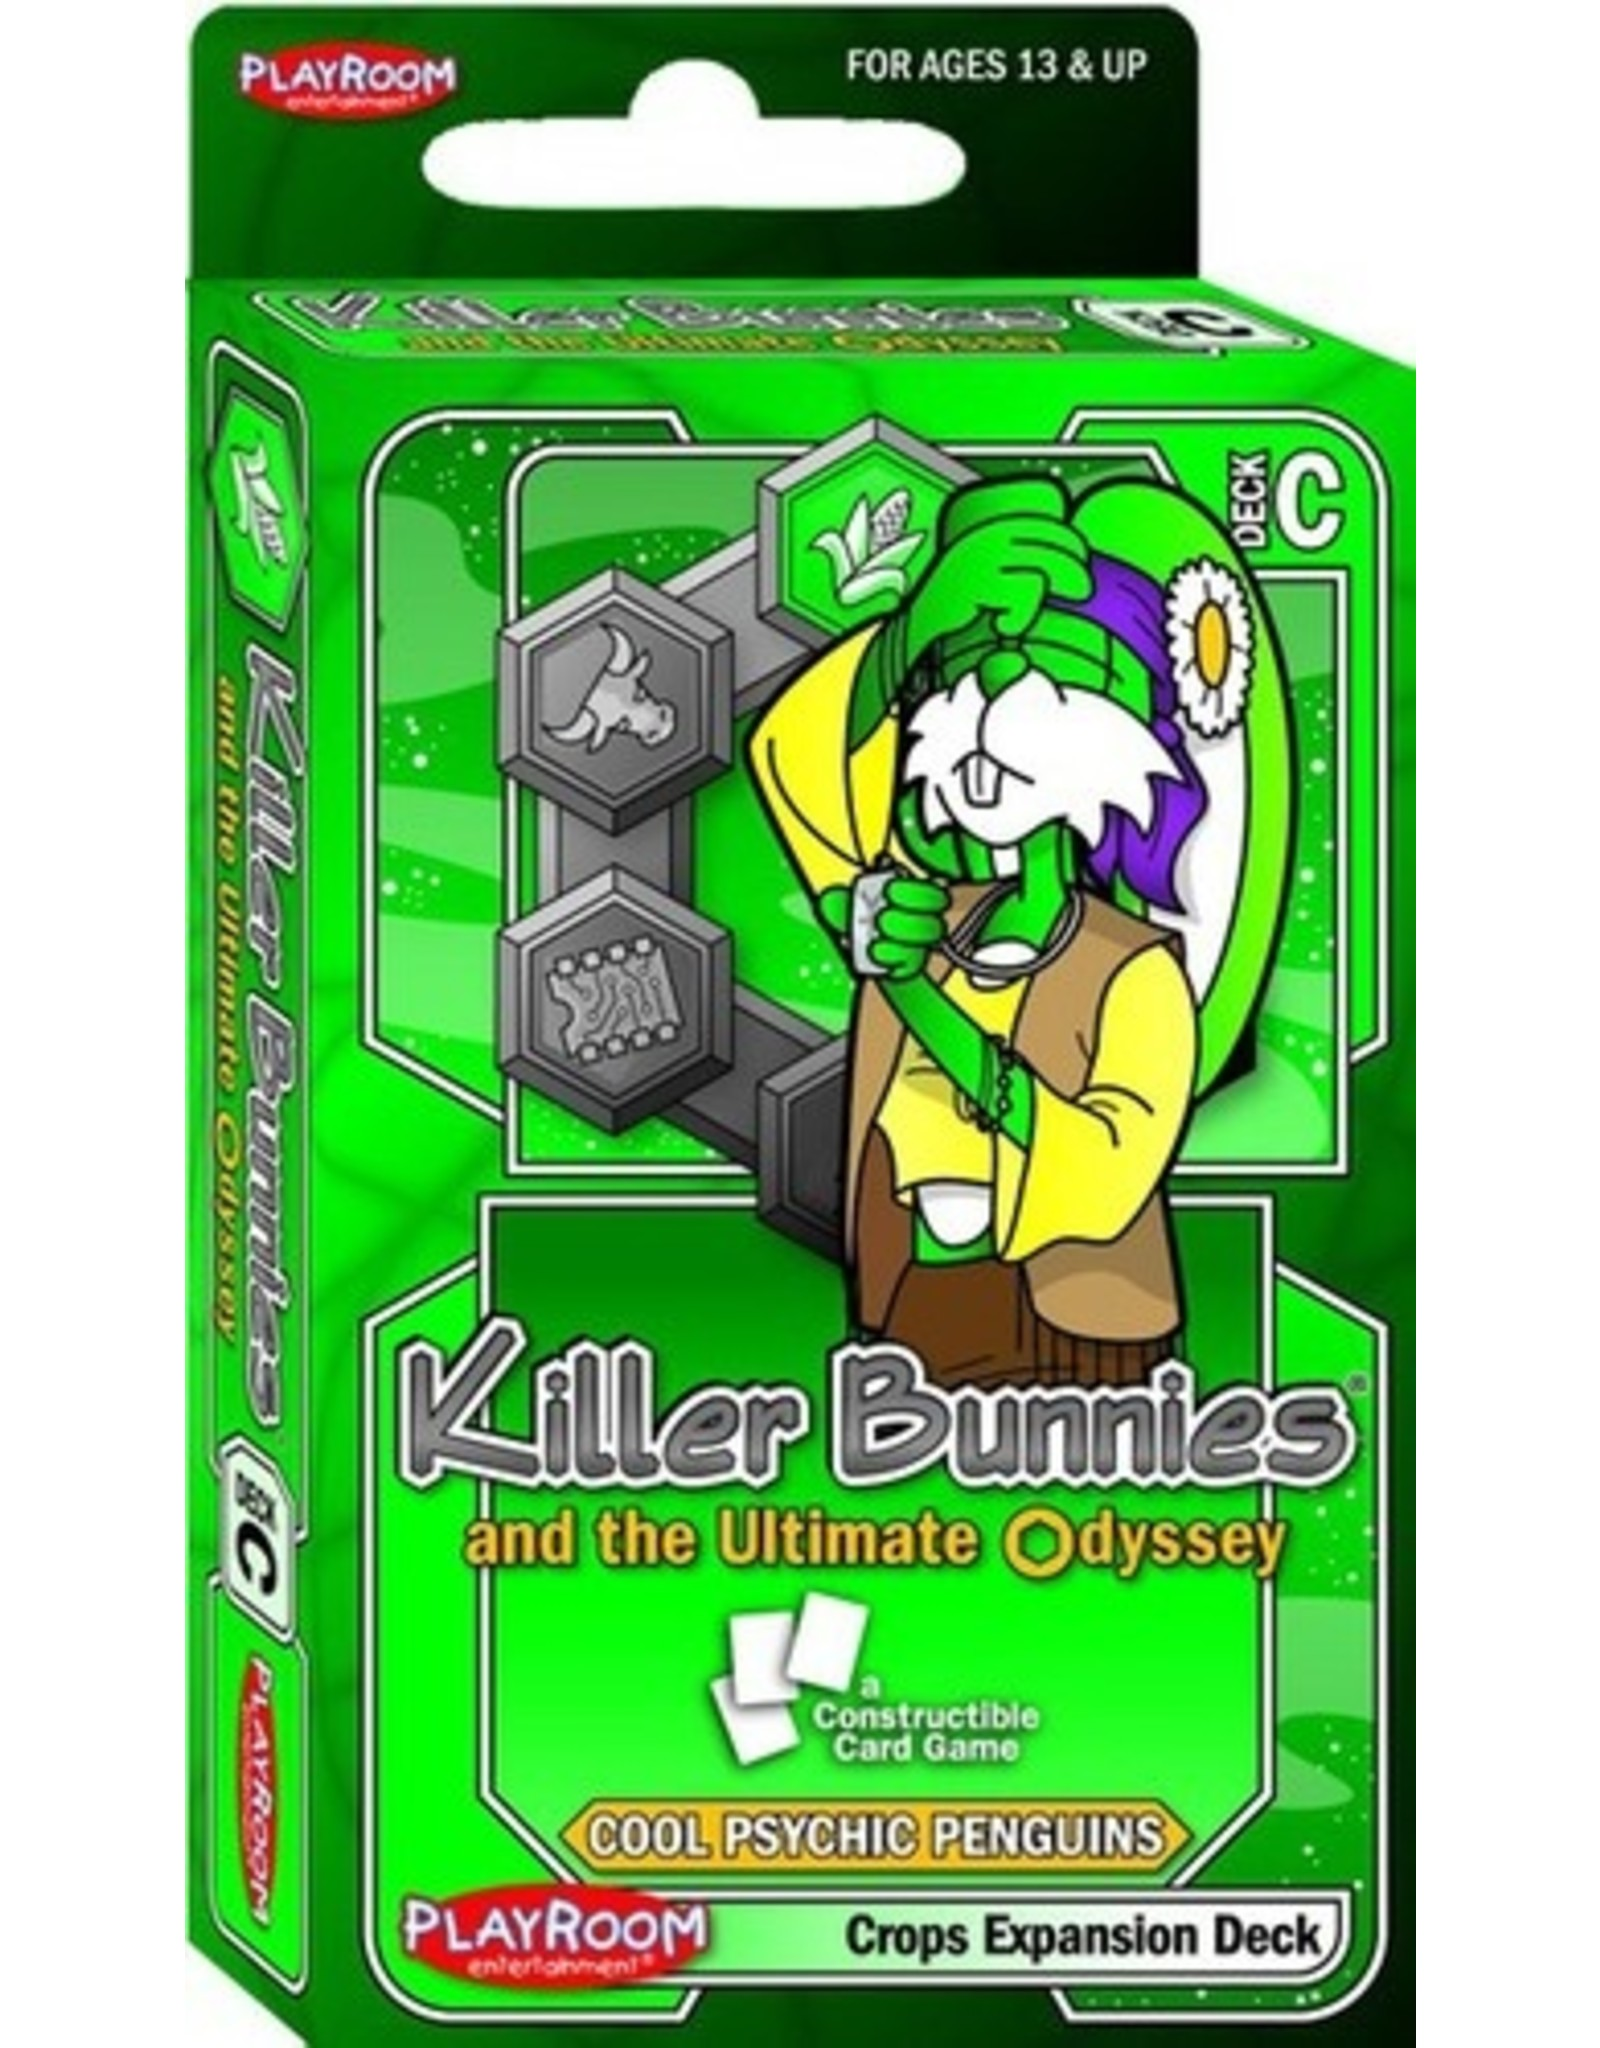 Killer Bunnies And The Ultimate Odyssey: Cool Psychic Penguin Crops Expansion Deck (c)